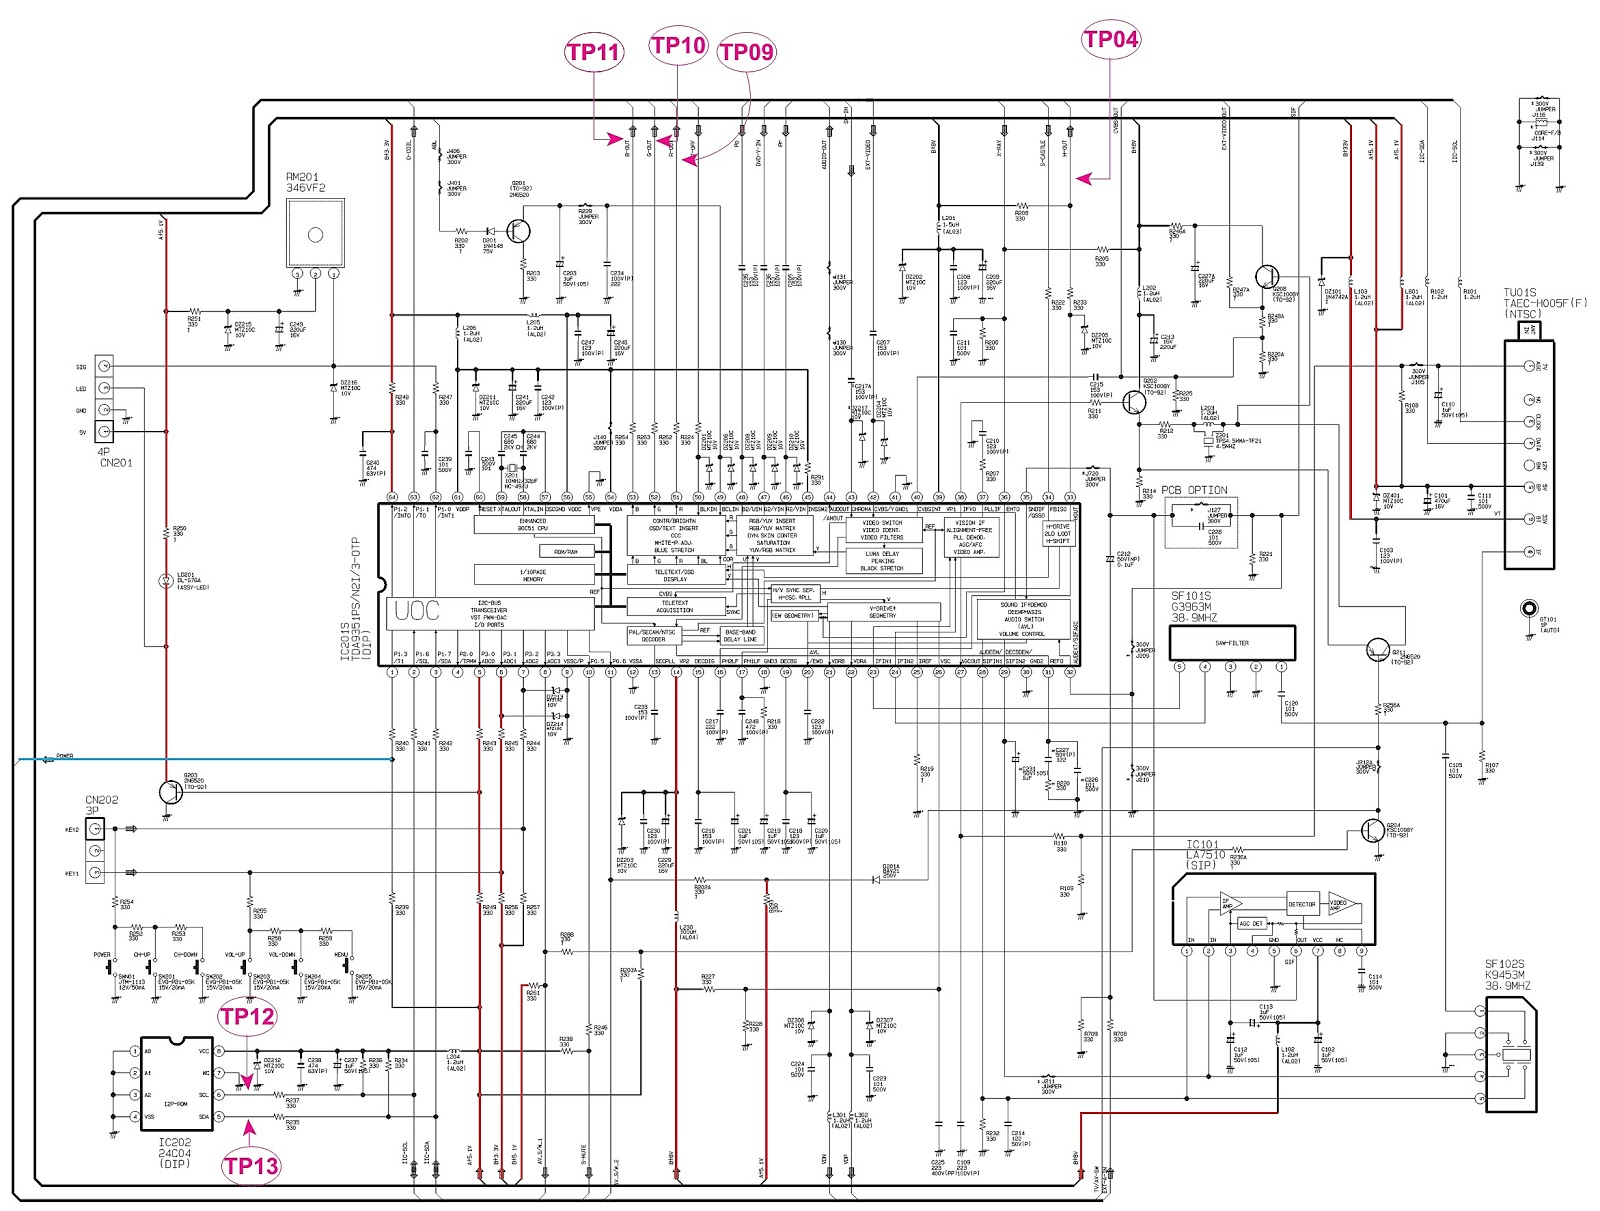 micom crt monitor block diagram electronics repair and technology news samsung led tv wiring diagram at bakdesigns.co